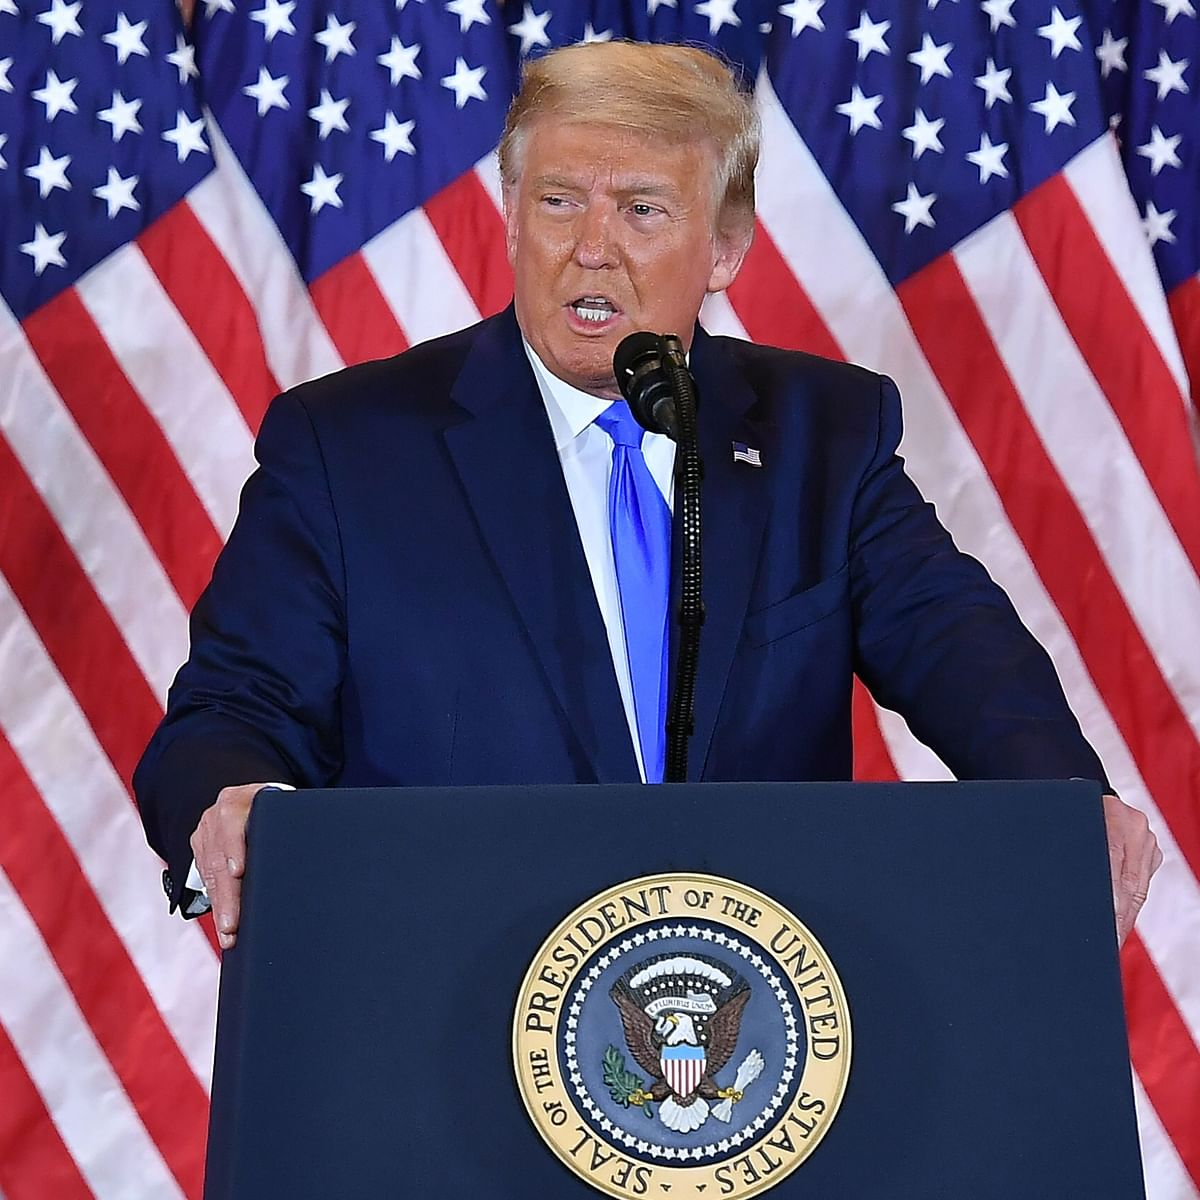 US Elections 2020: Trump alleges 'major fraud', says going to Supreme Court